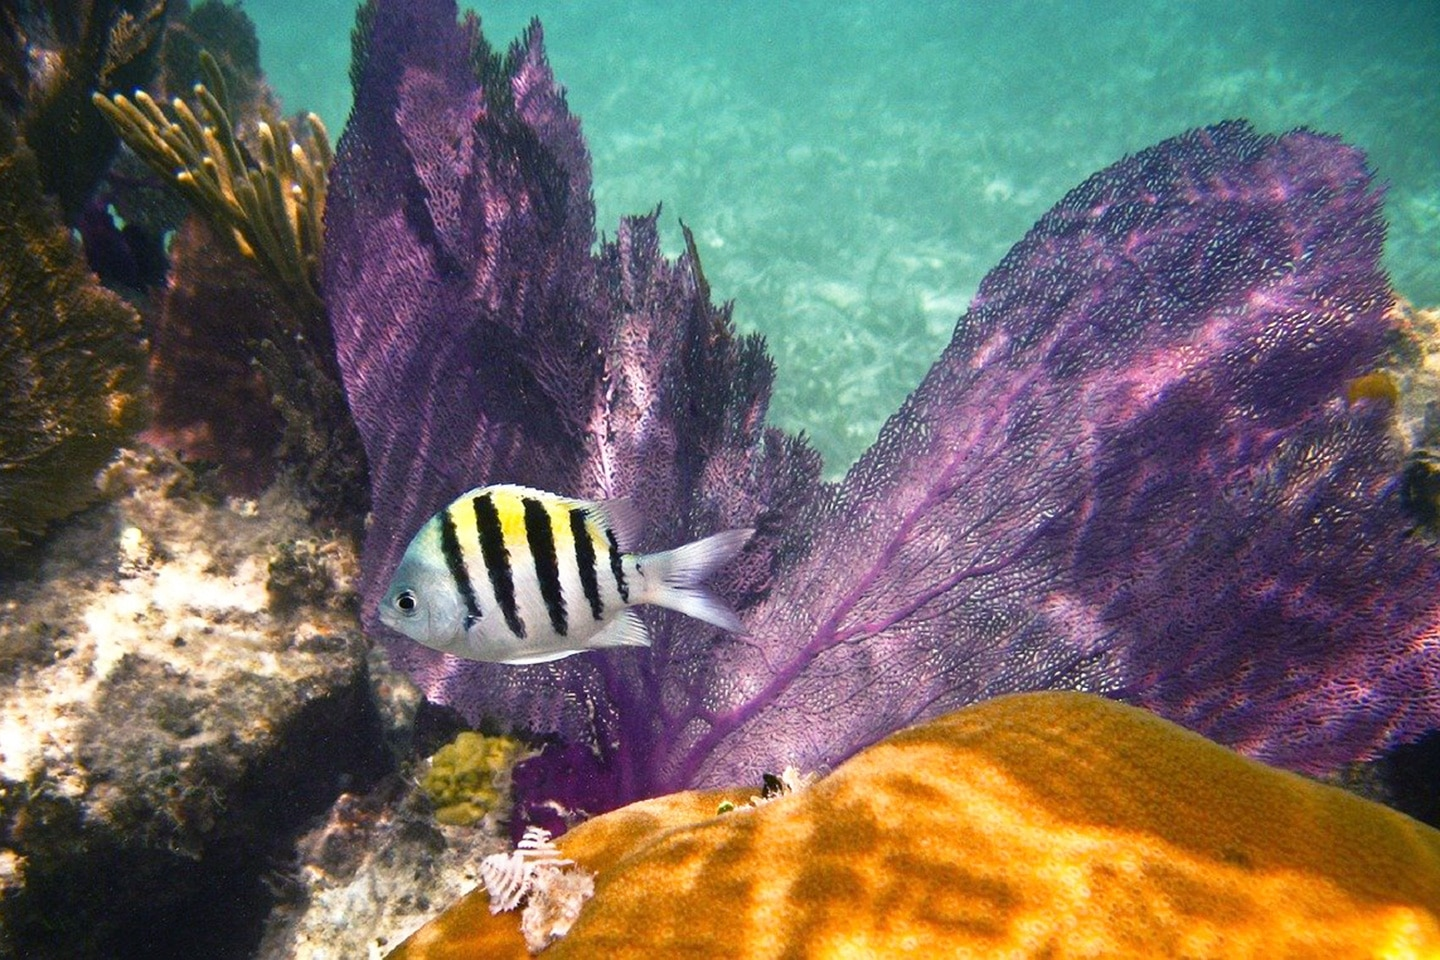 Sergeant Major Fish in the Caribbean Sea